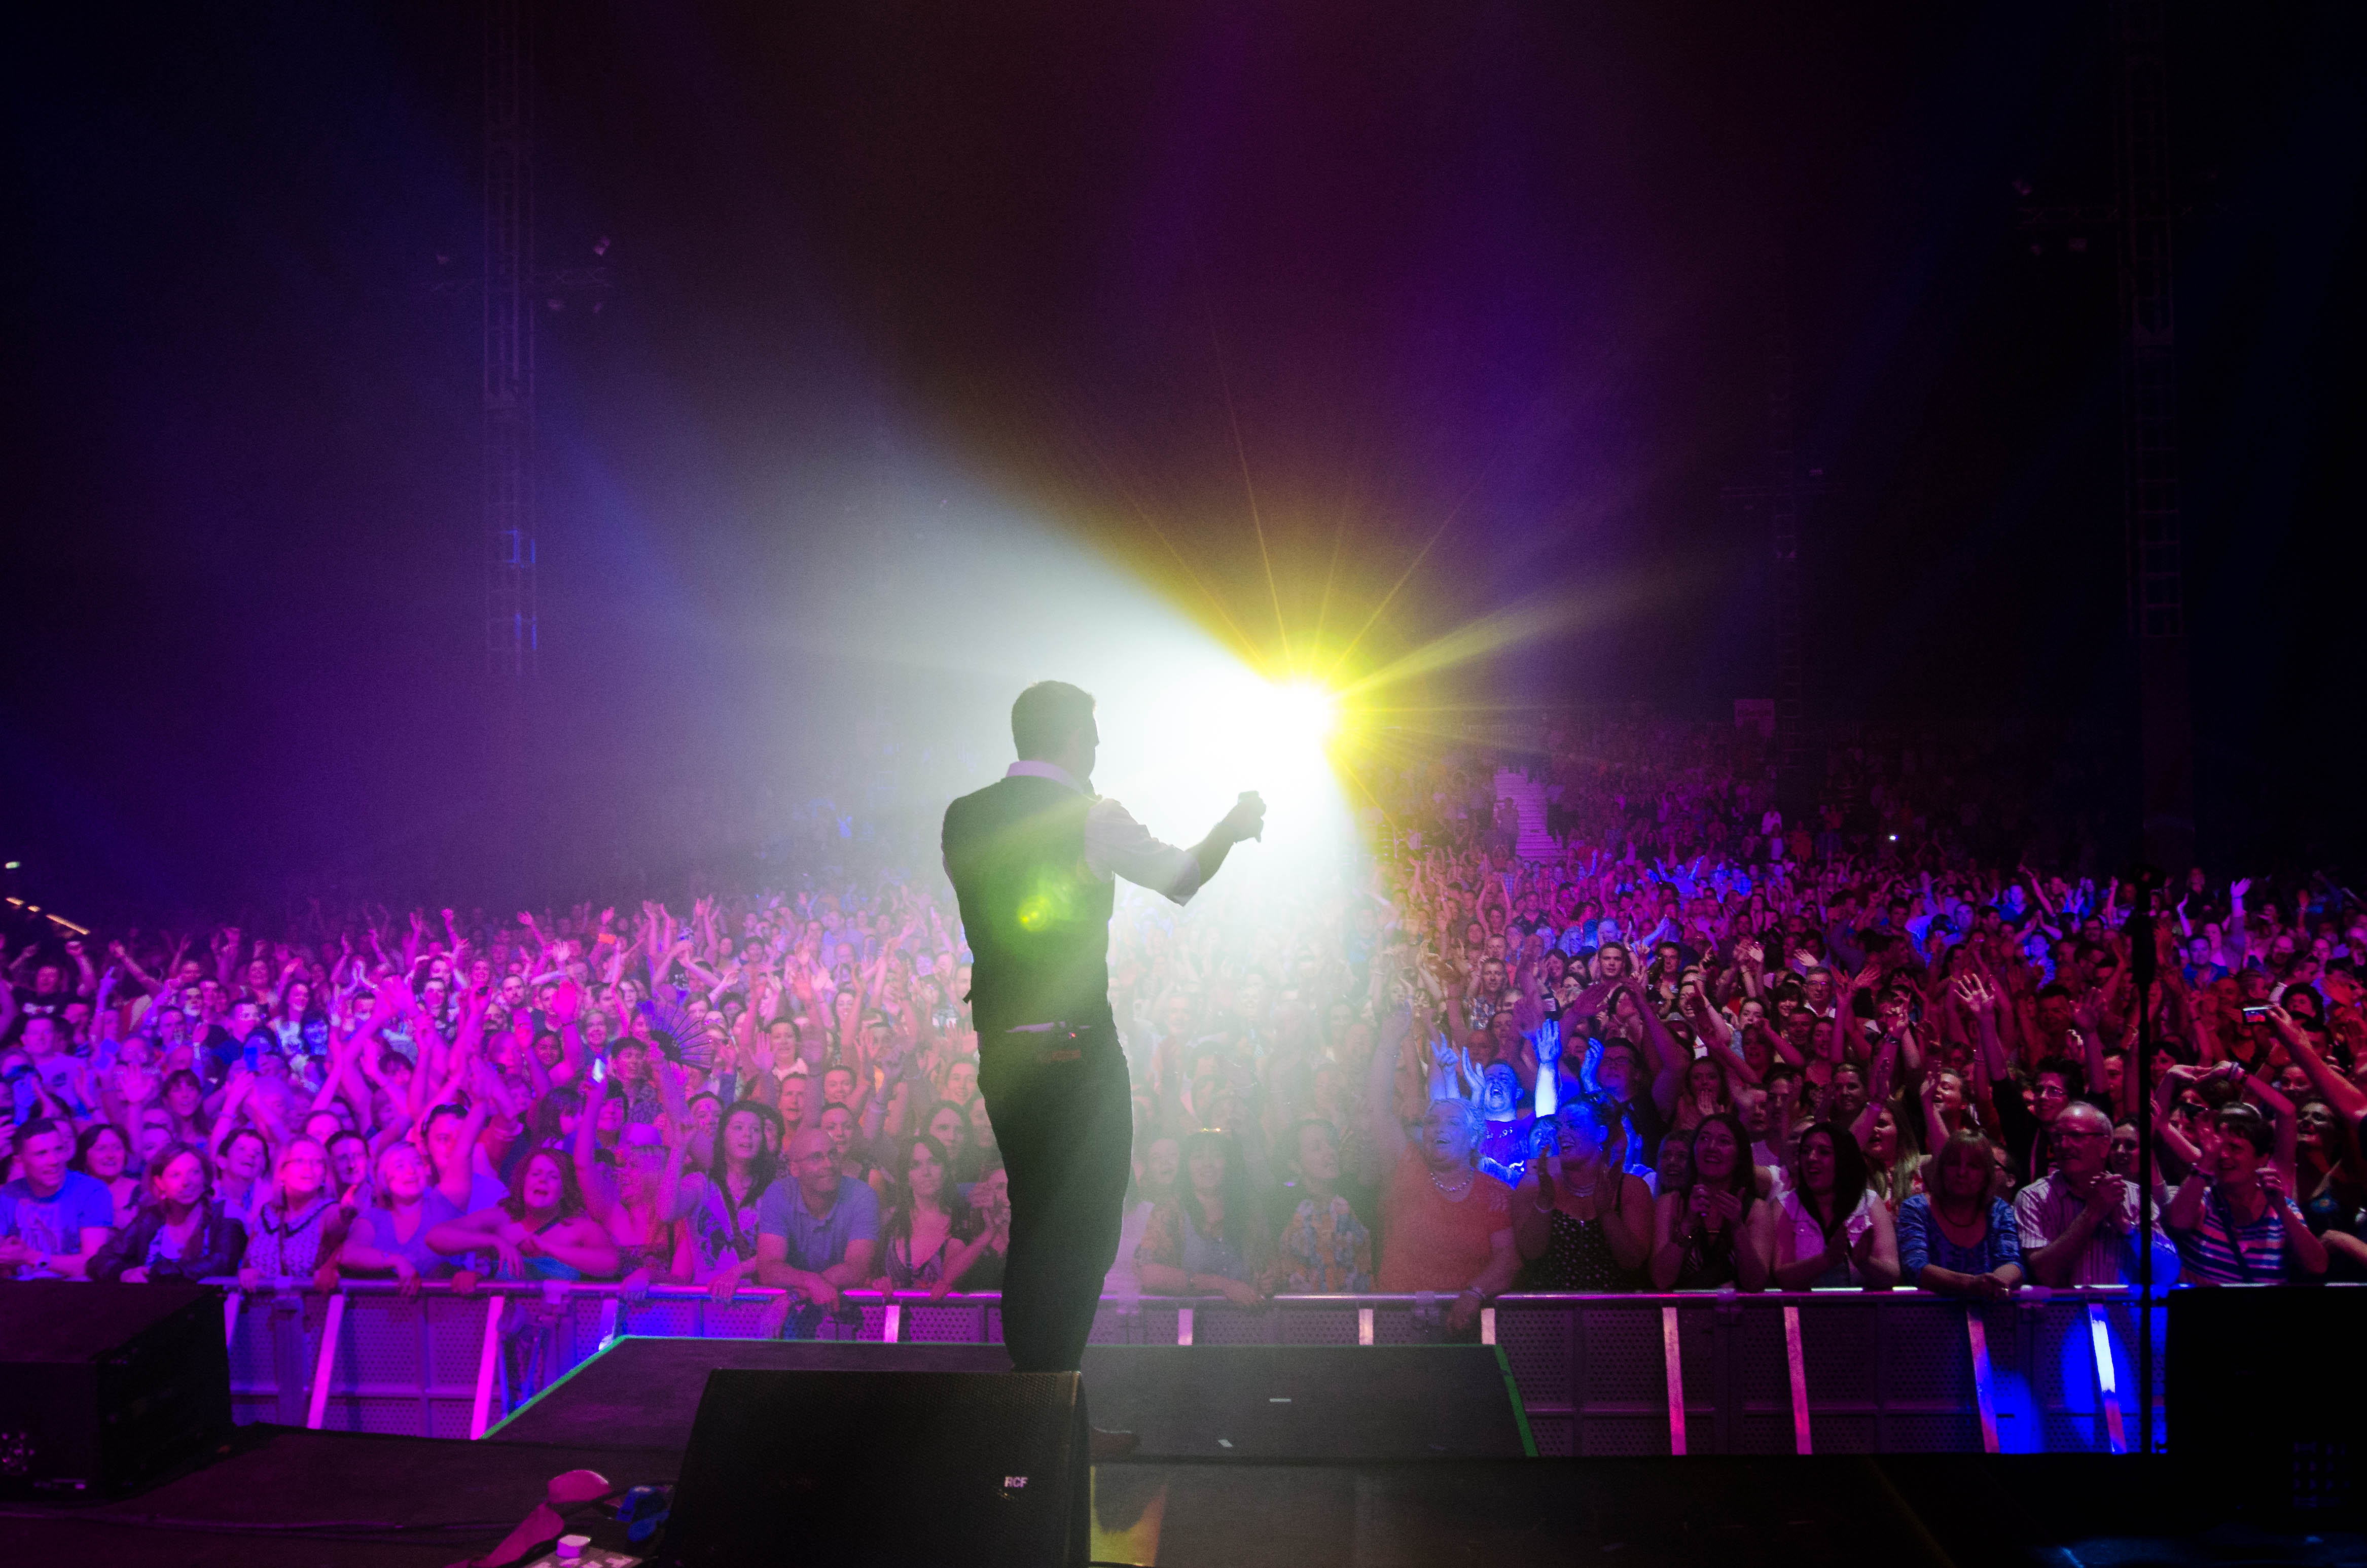 nathan-carter-at-the-marquee-cork-by-sean-smyth-15-6-14-52-of-55